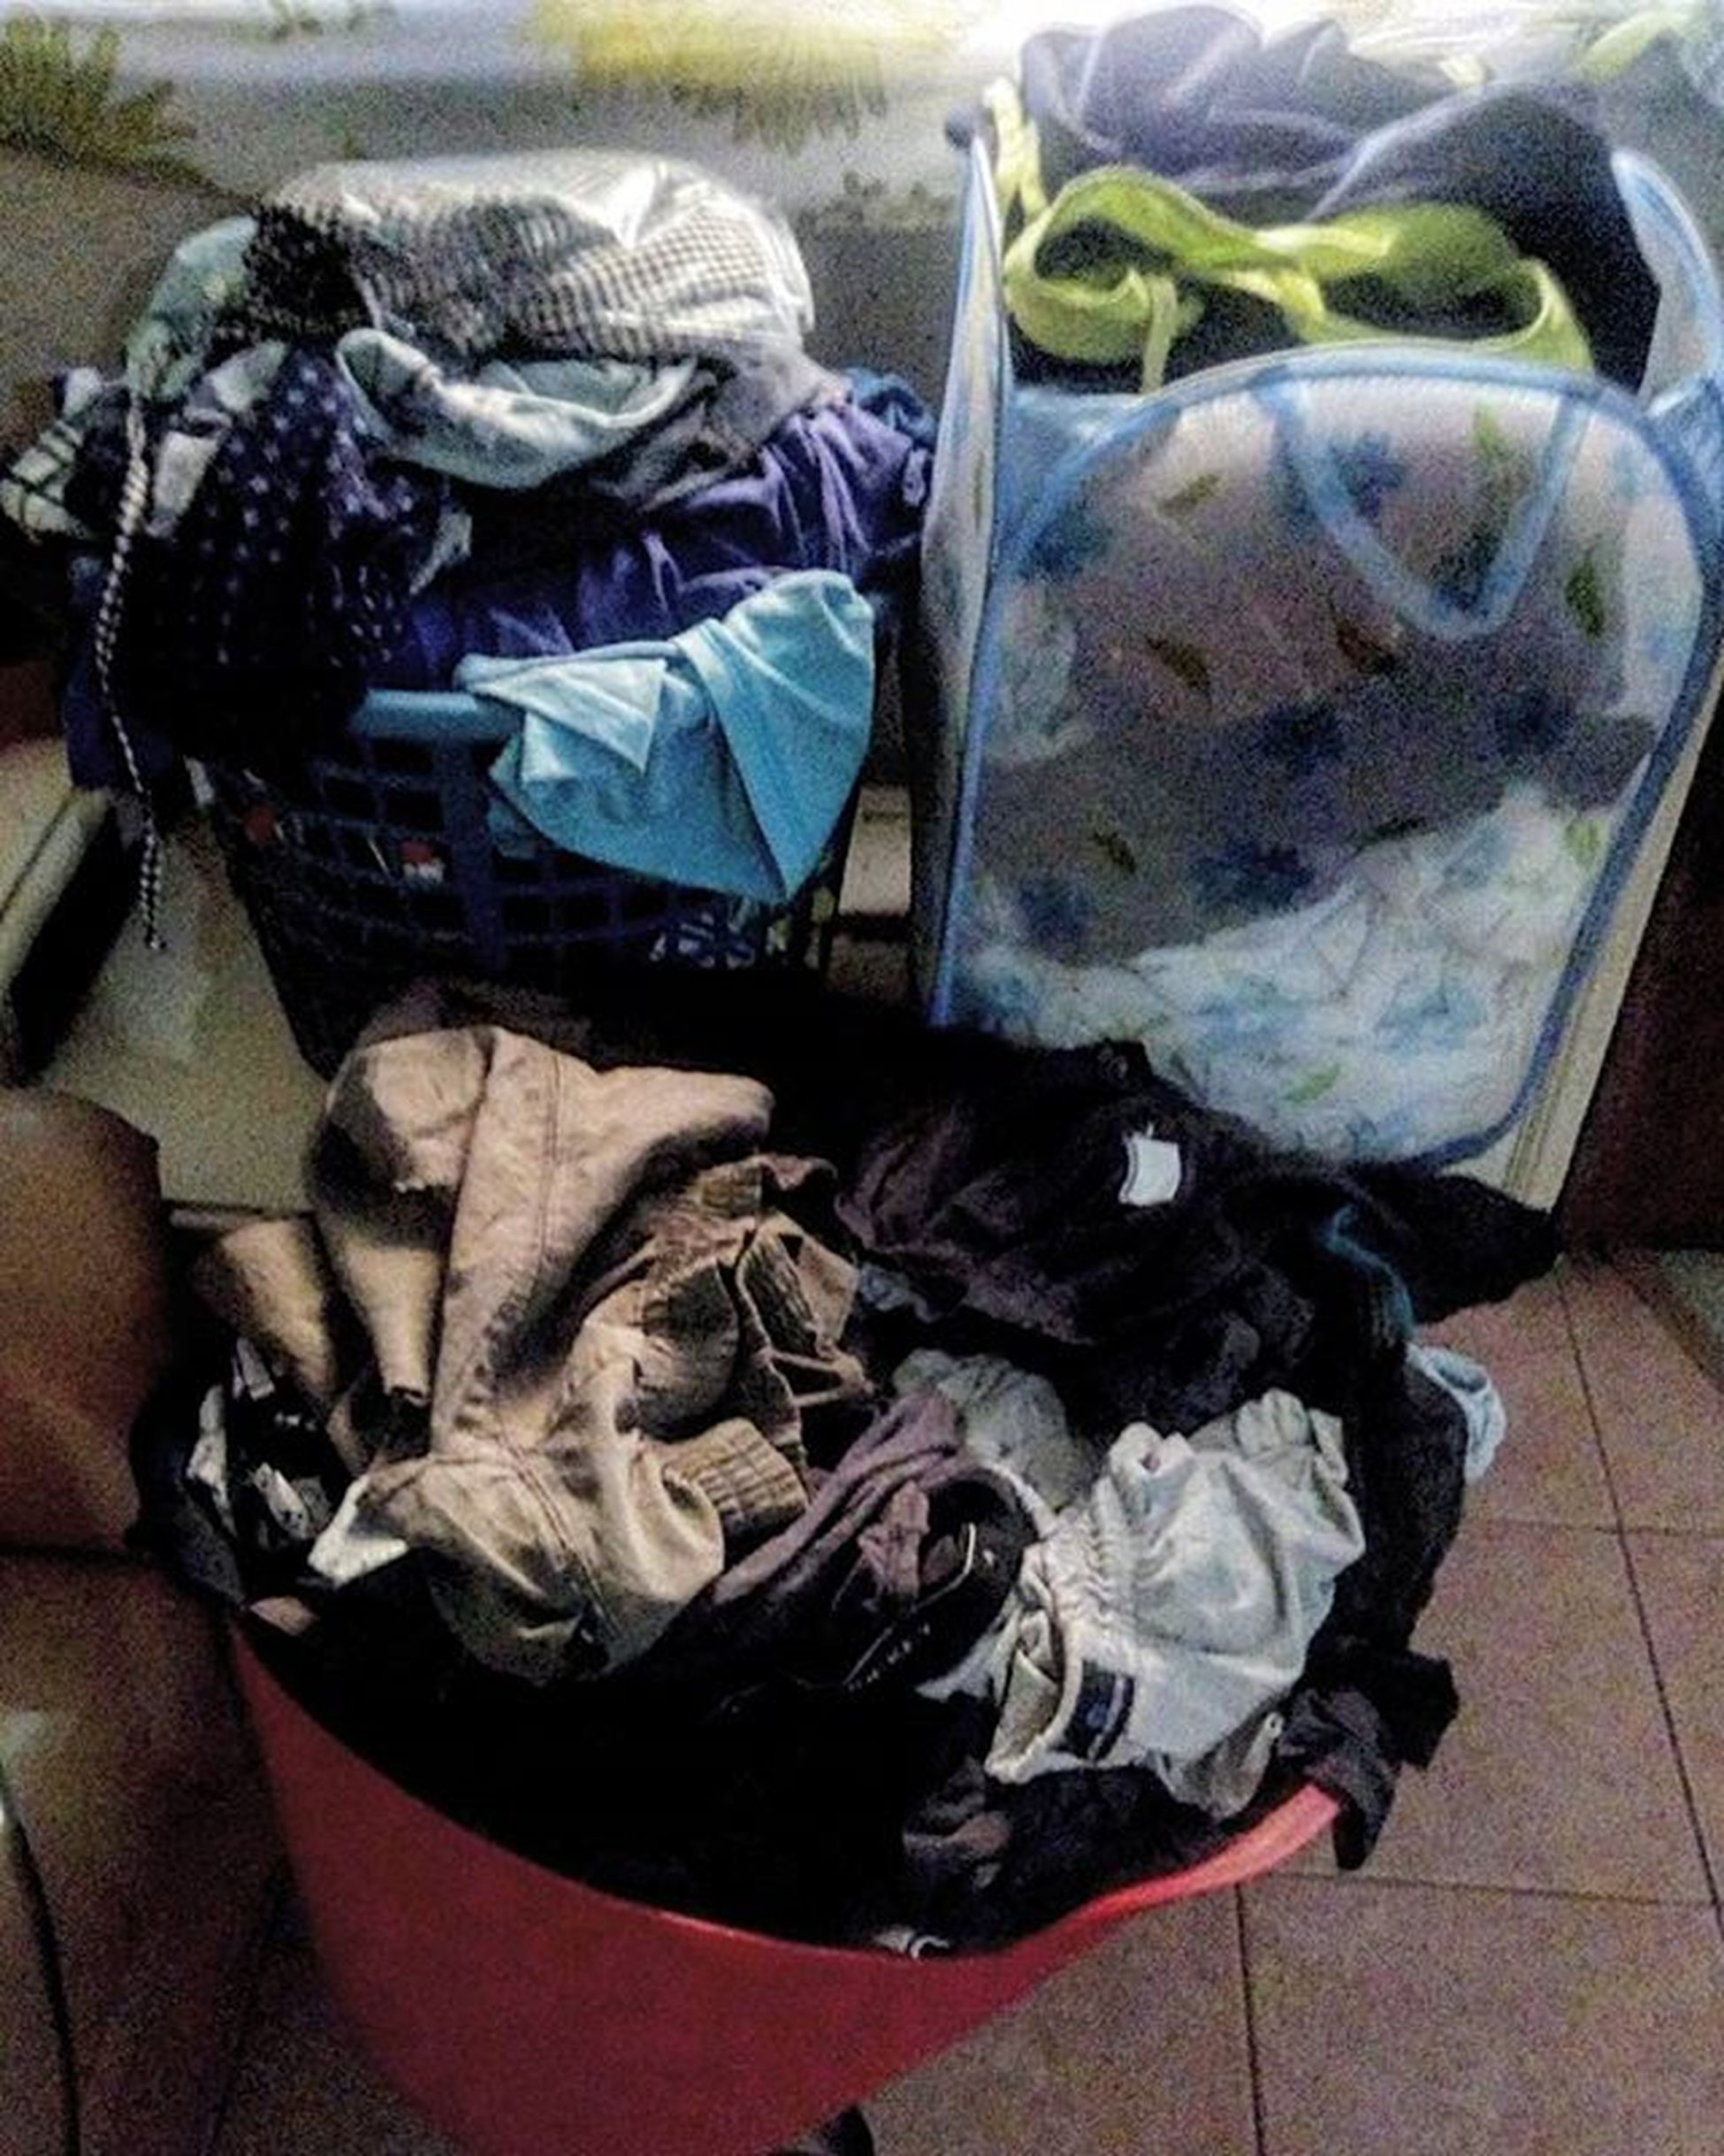 This has to end! Tabla ang rest day ani trssssk! Laundryday Notsocool WeekendSyndrome Labandero